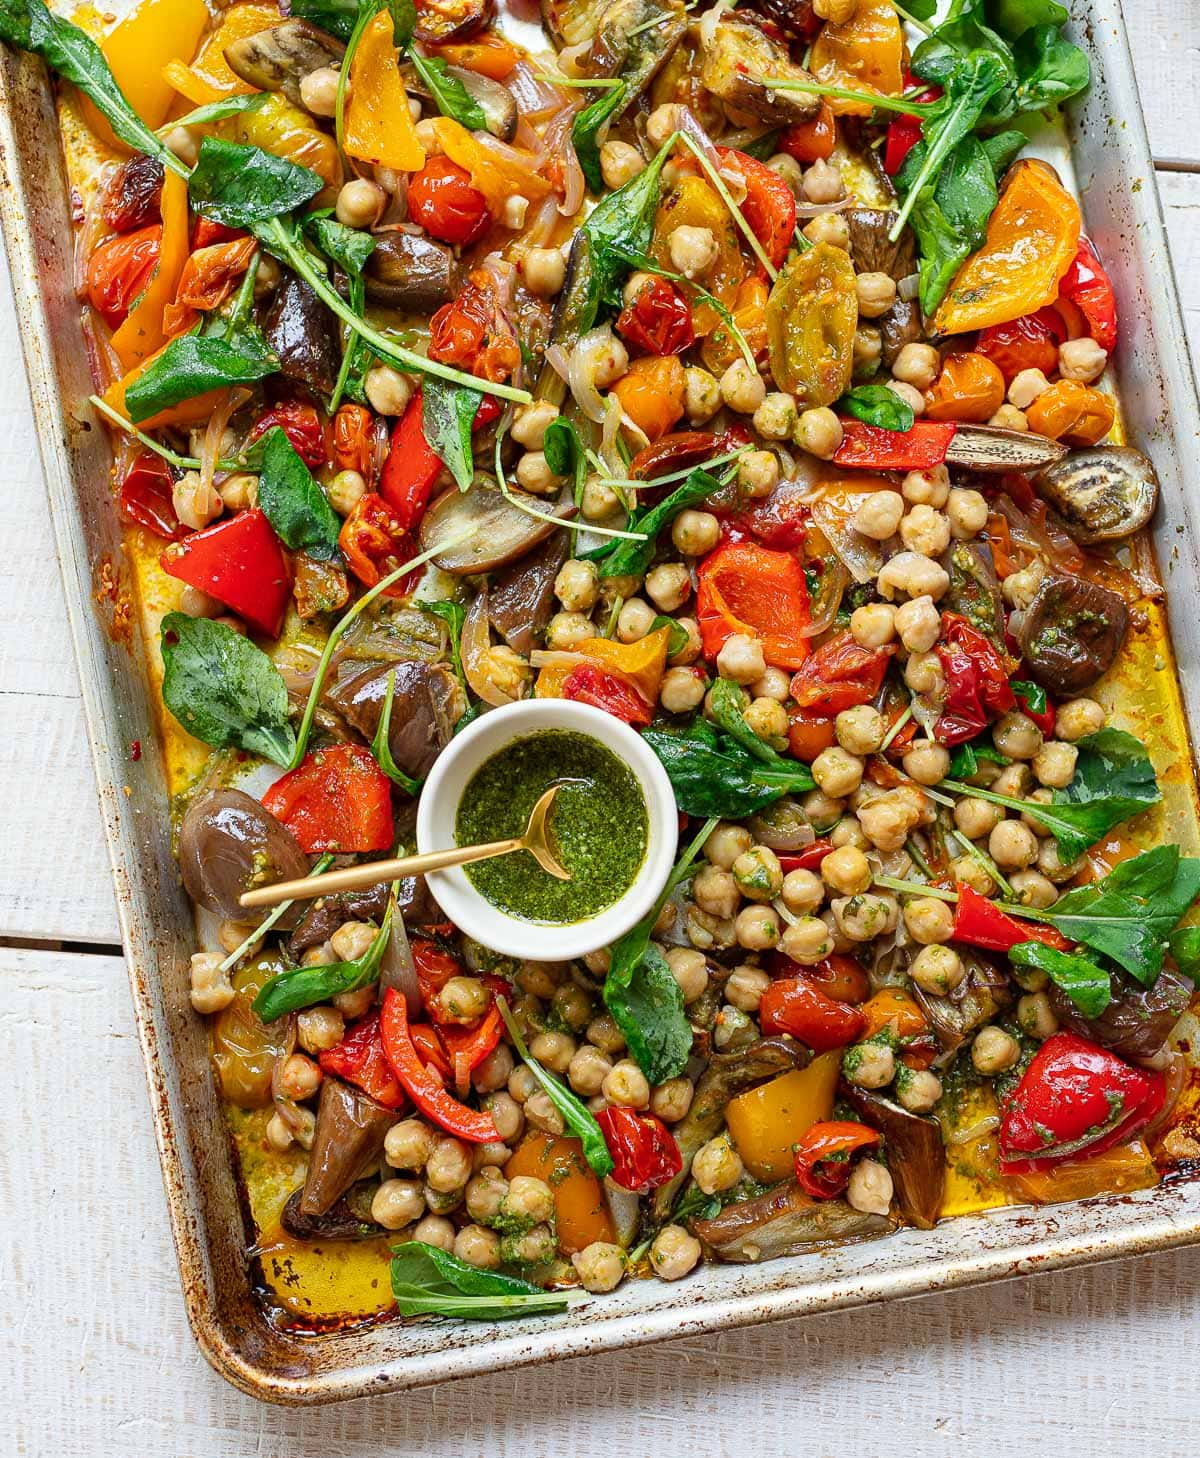 Sheet pan with roasted bell peppers, red and orange cherry tomatoes, eggplant and arugula greens with pesto sauce on the side.